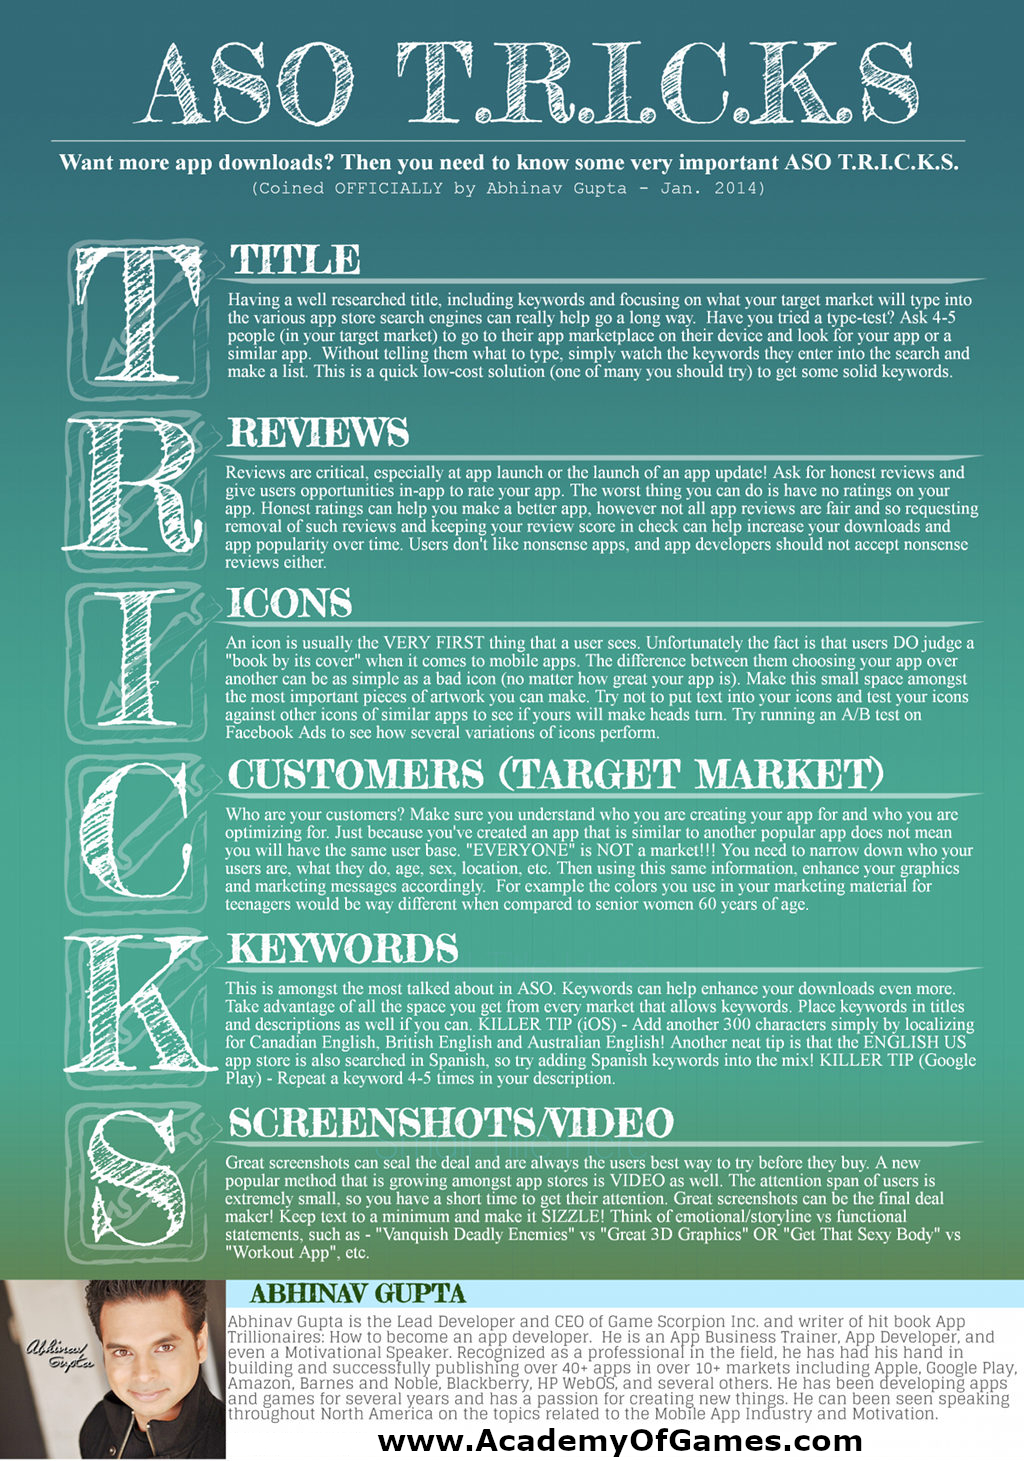 6 ASO (App Store Optimization) T.R.I.C.K.S. To Stand Out From The Crowd!